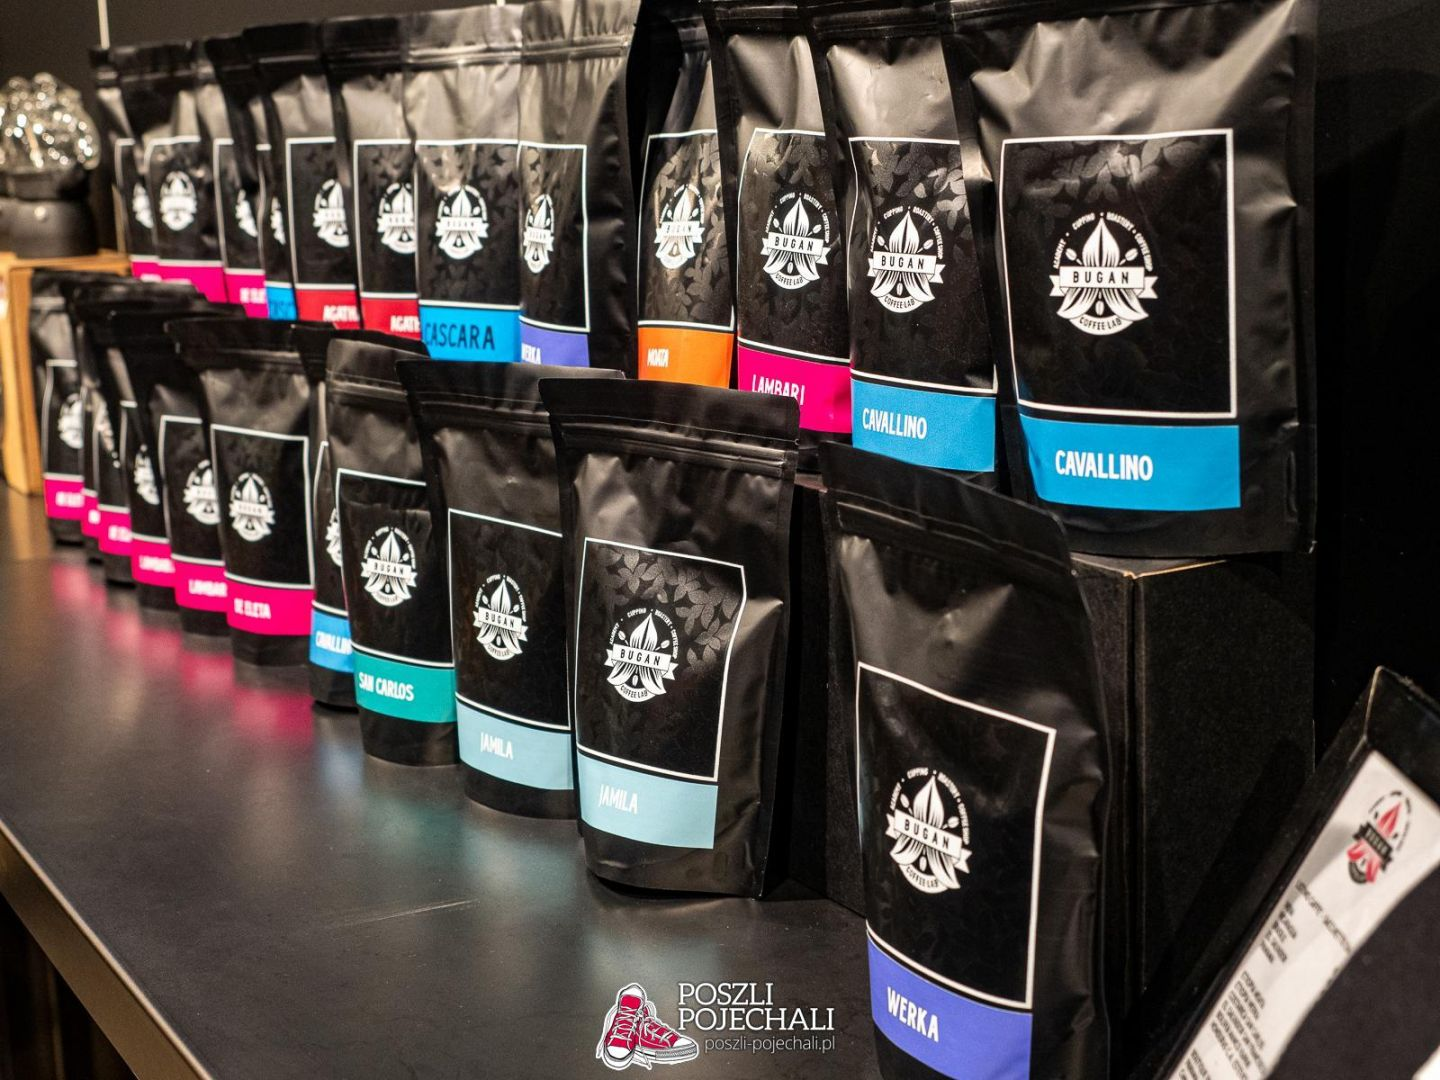 Bugan Coffee Lab - Citta Alta, Bergamo